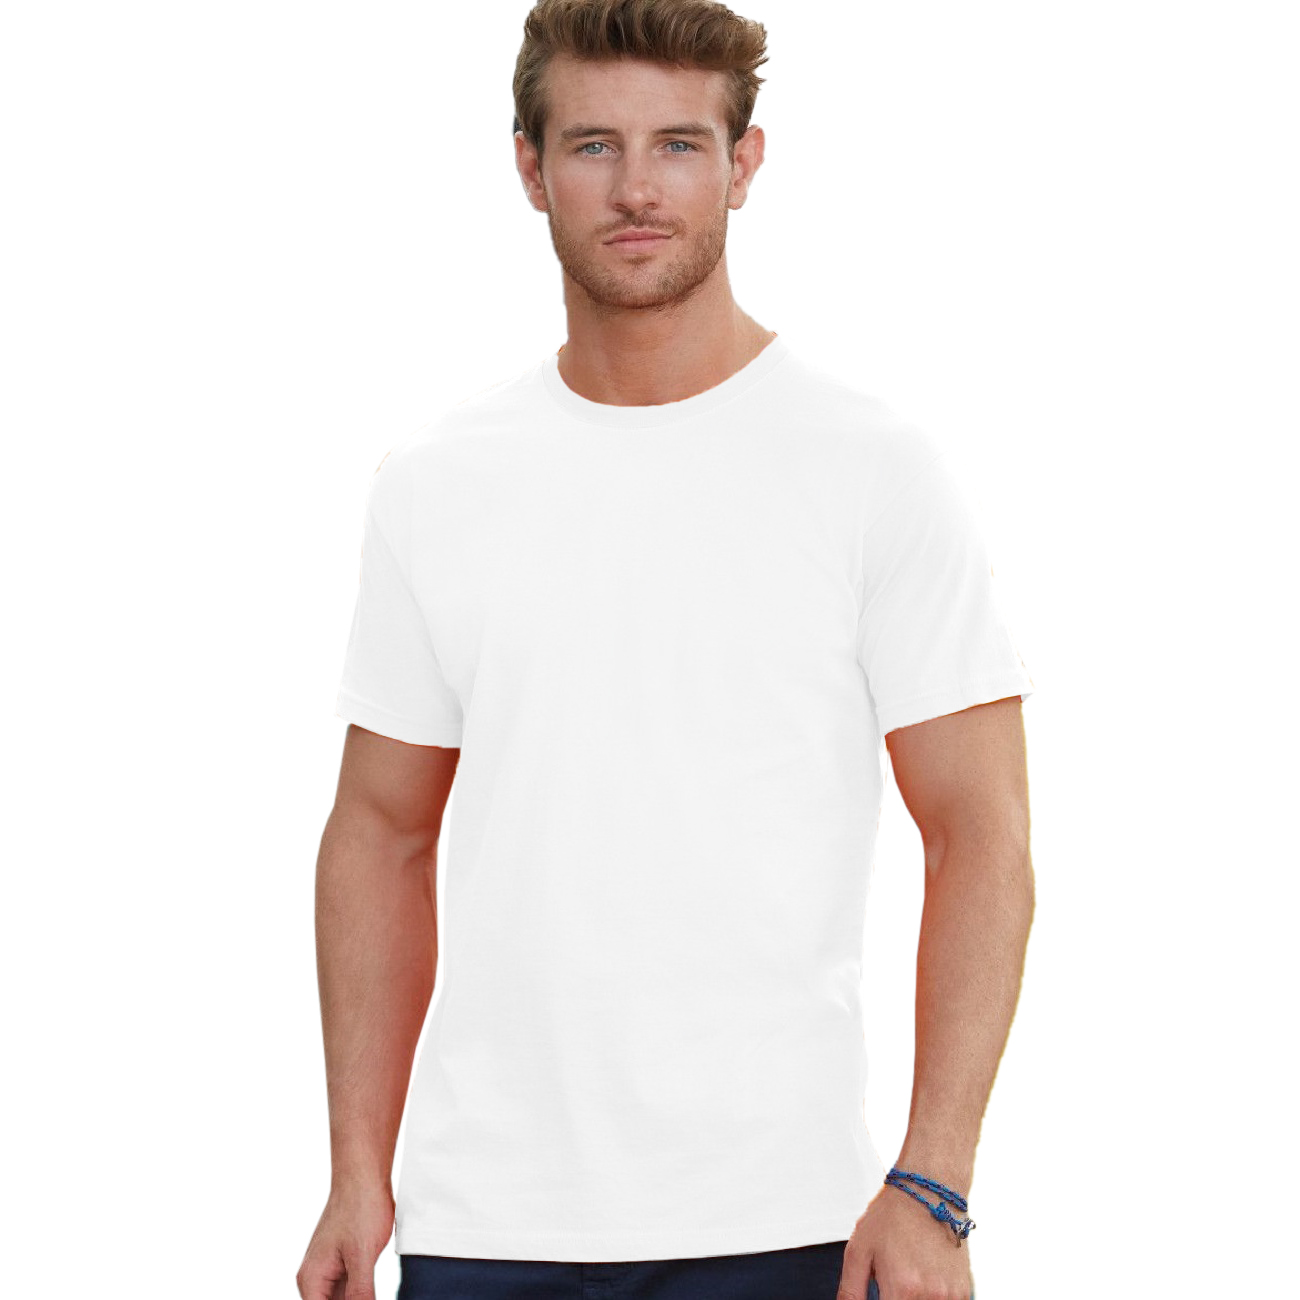 BC350 Fruit Of The Loom Mens Heavy Weight Cotton Short Sleeve T-Shirt//Tee